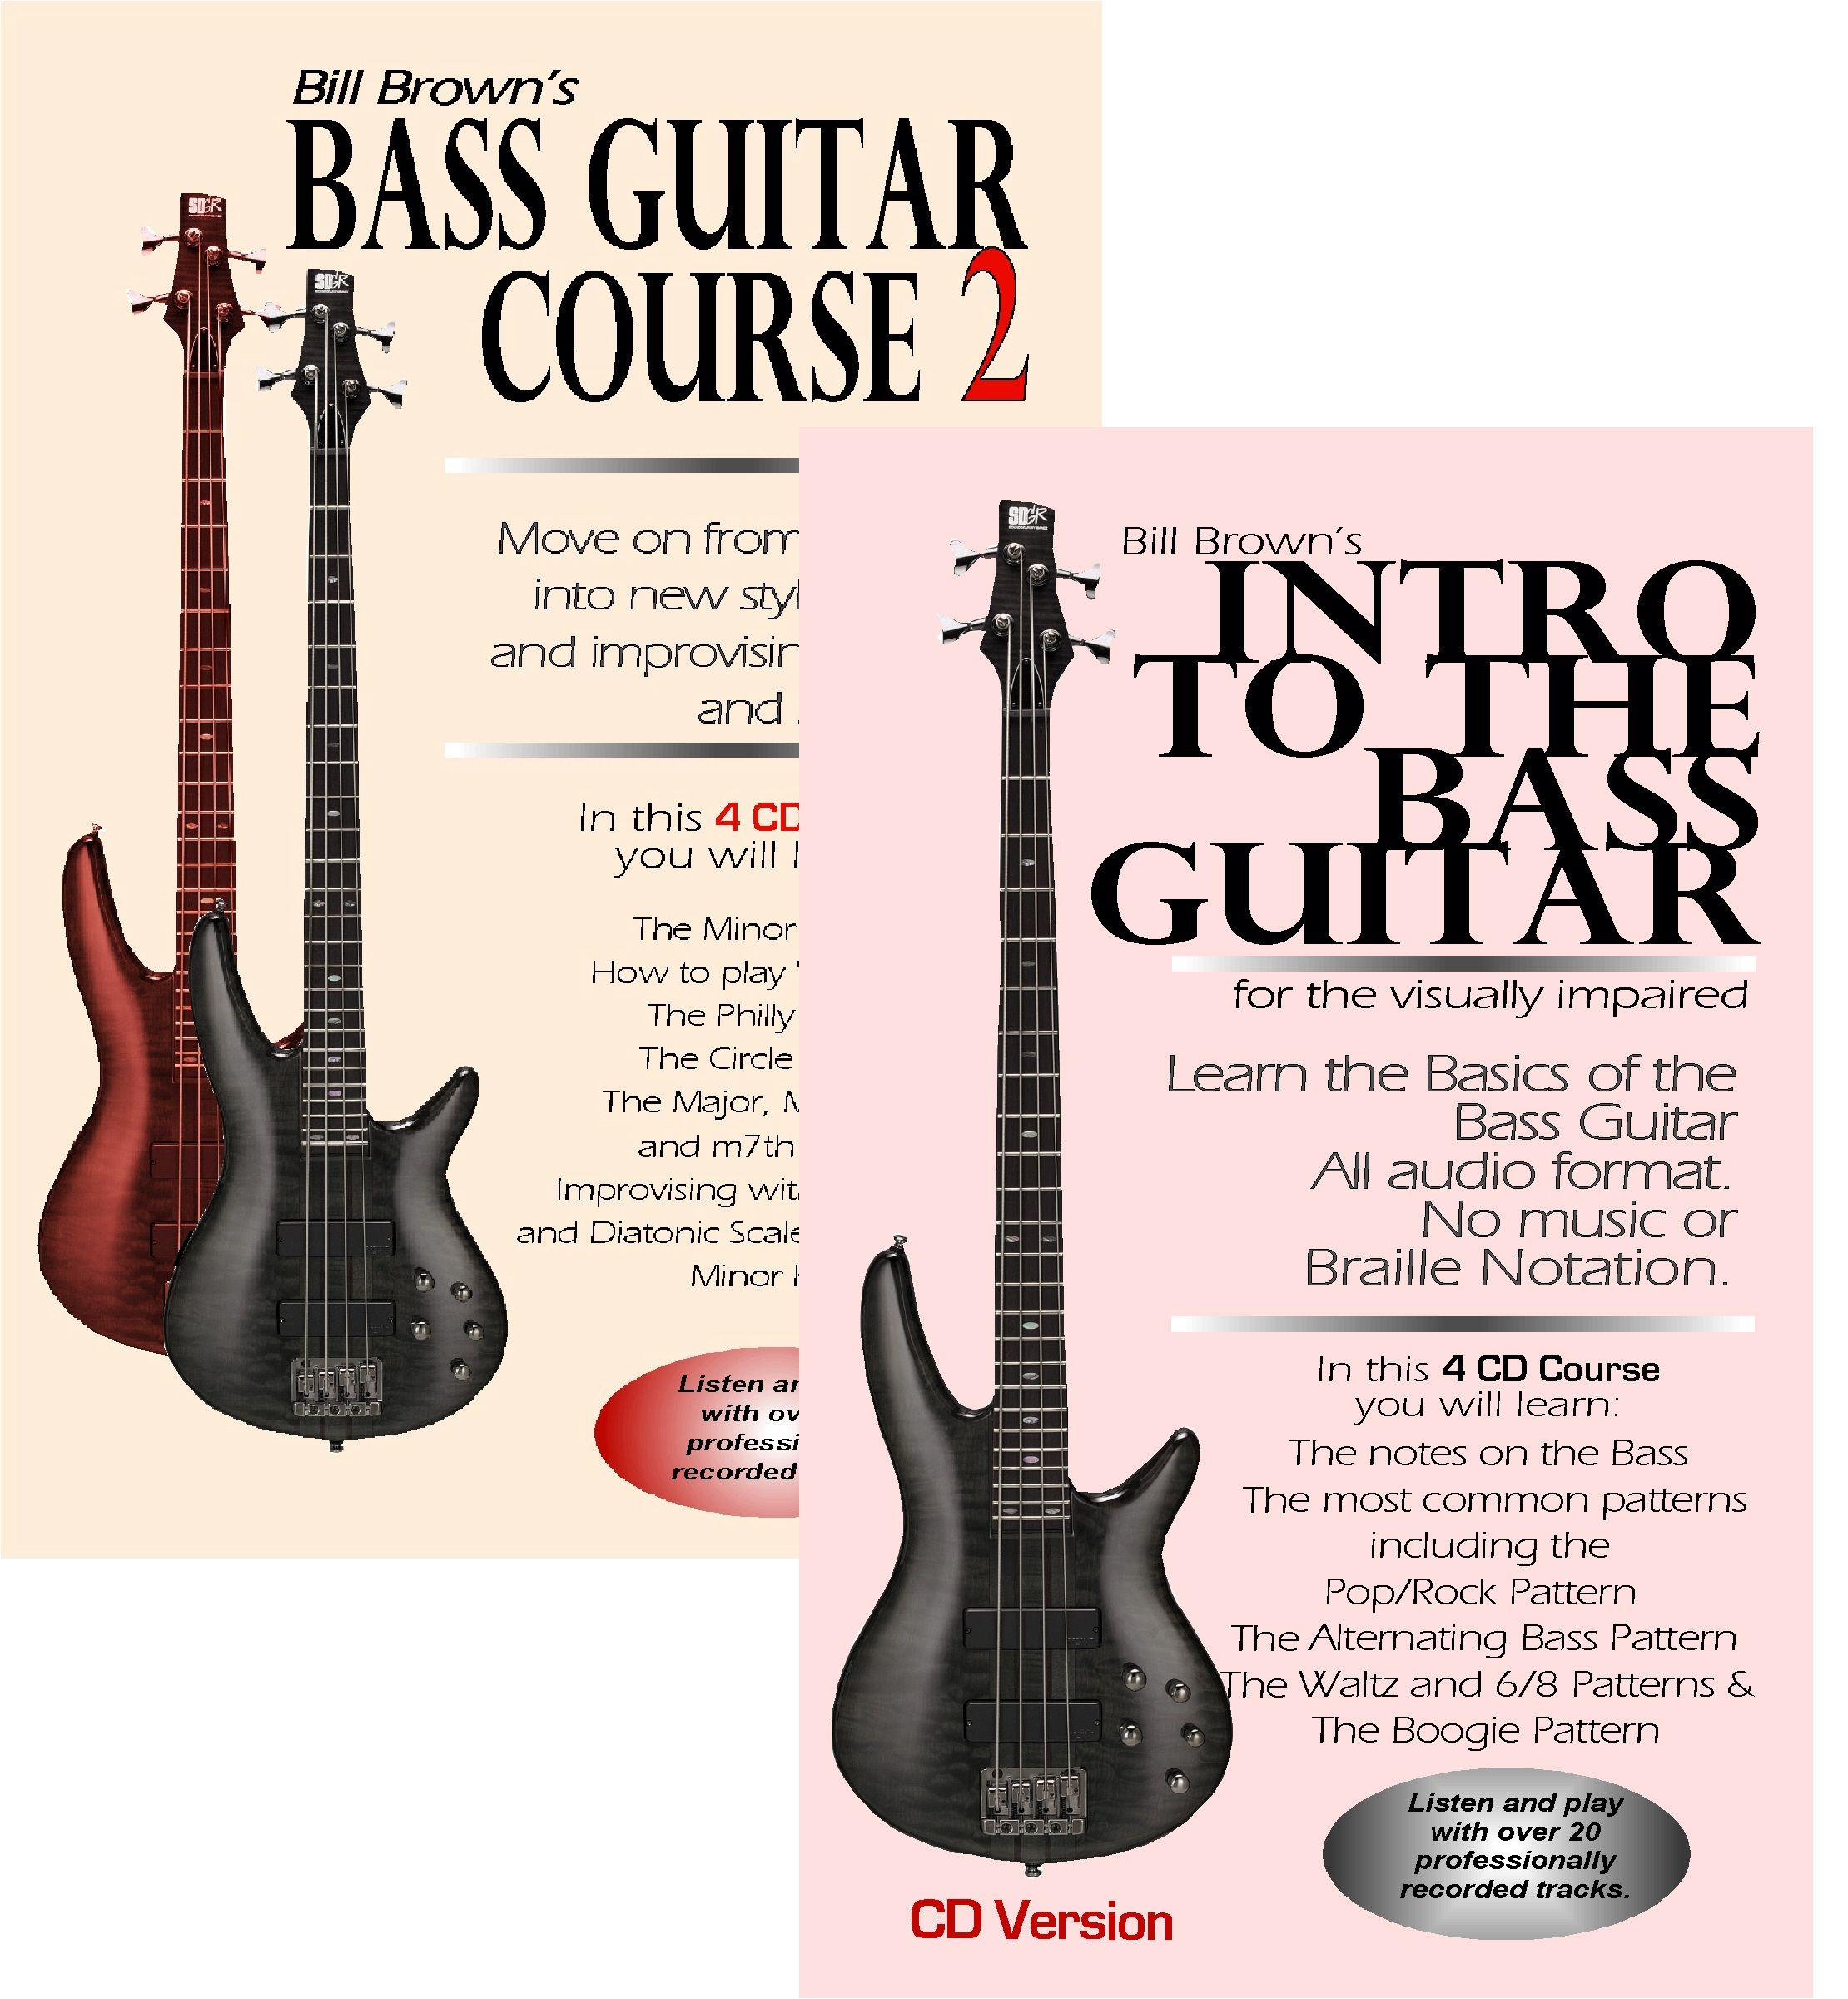 Intro to the Bass Guitar for the Visually Impaired and Bass Course 2